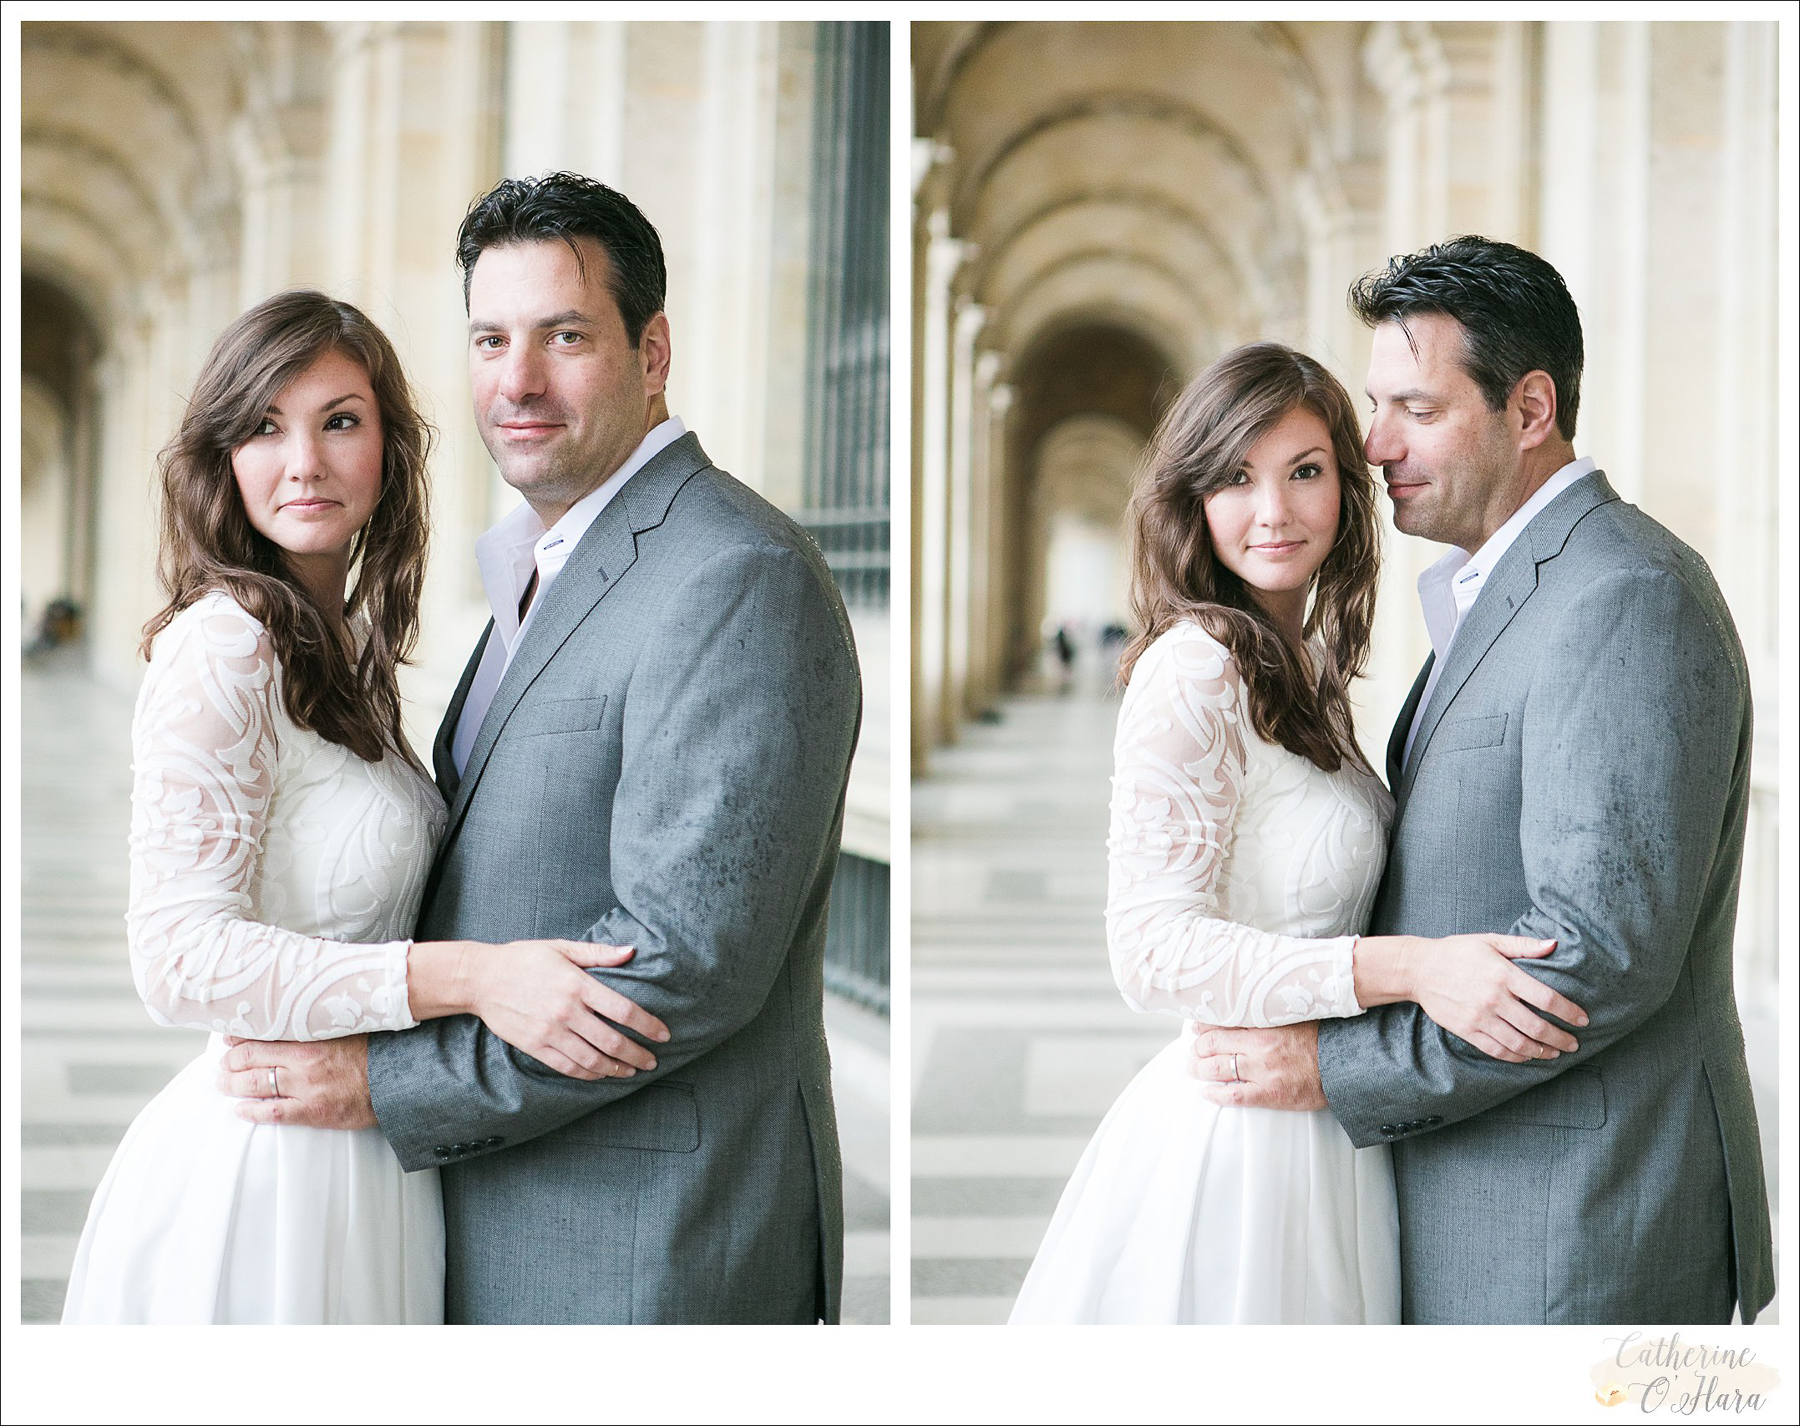 romantic paris elopement photographer-02.jpg